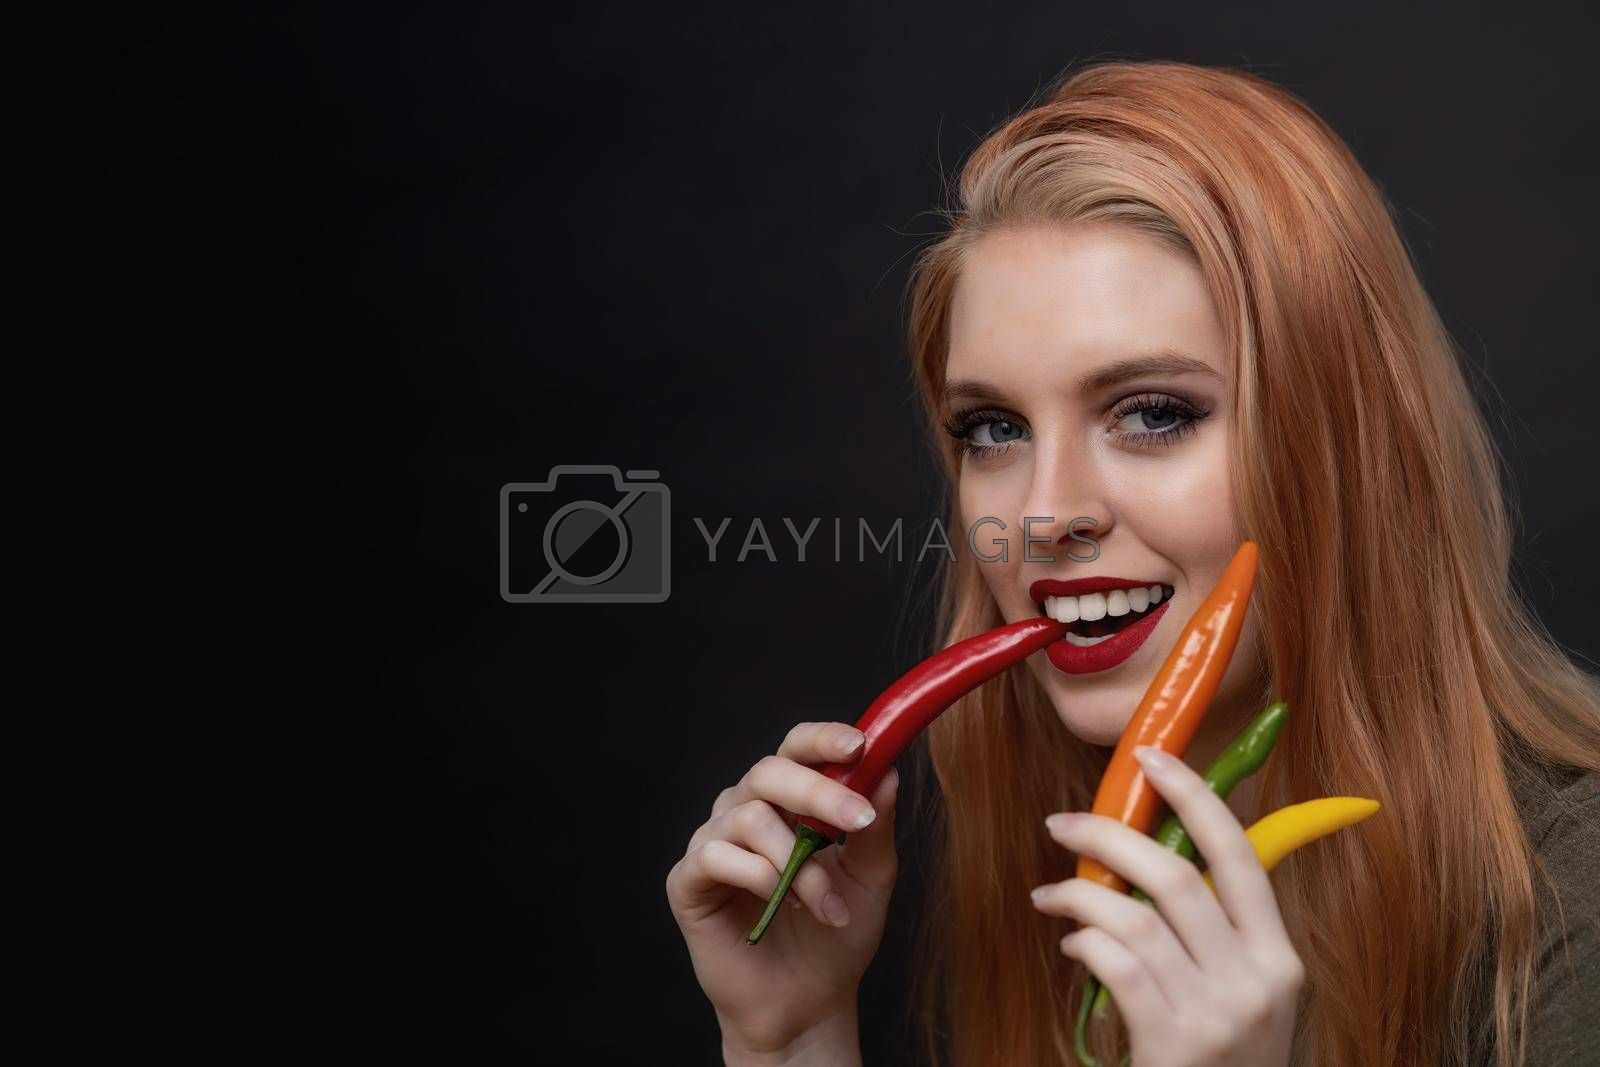 Royalty free image of Attractive young woman is tasting red chili pepper by Frank11